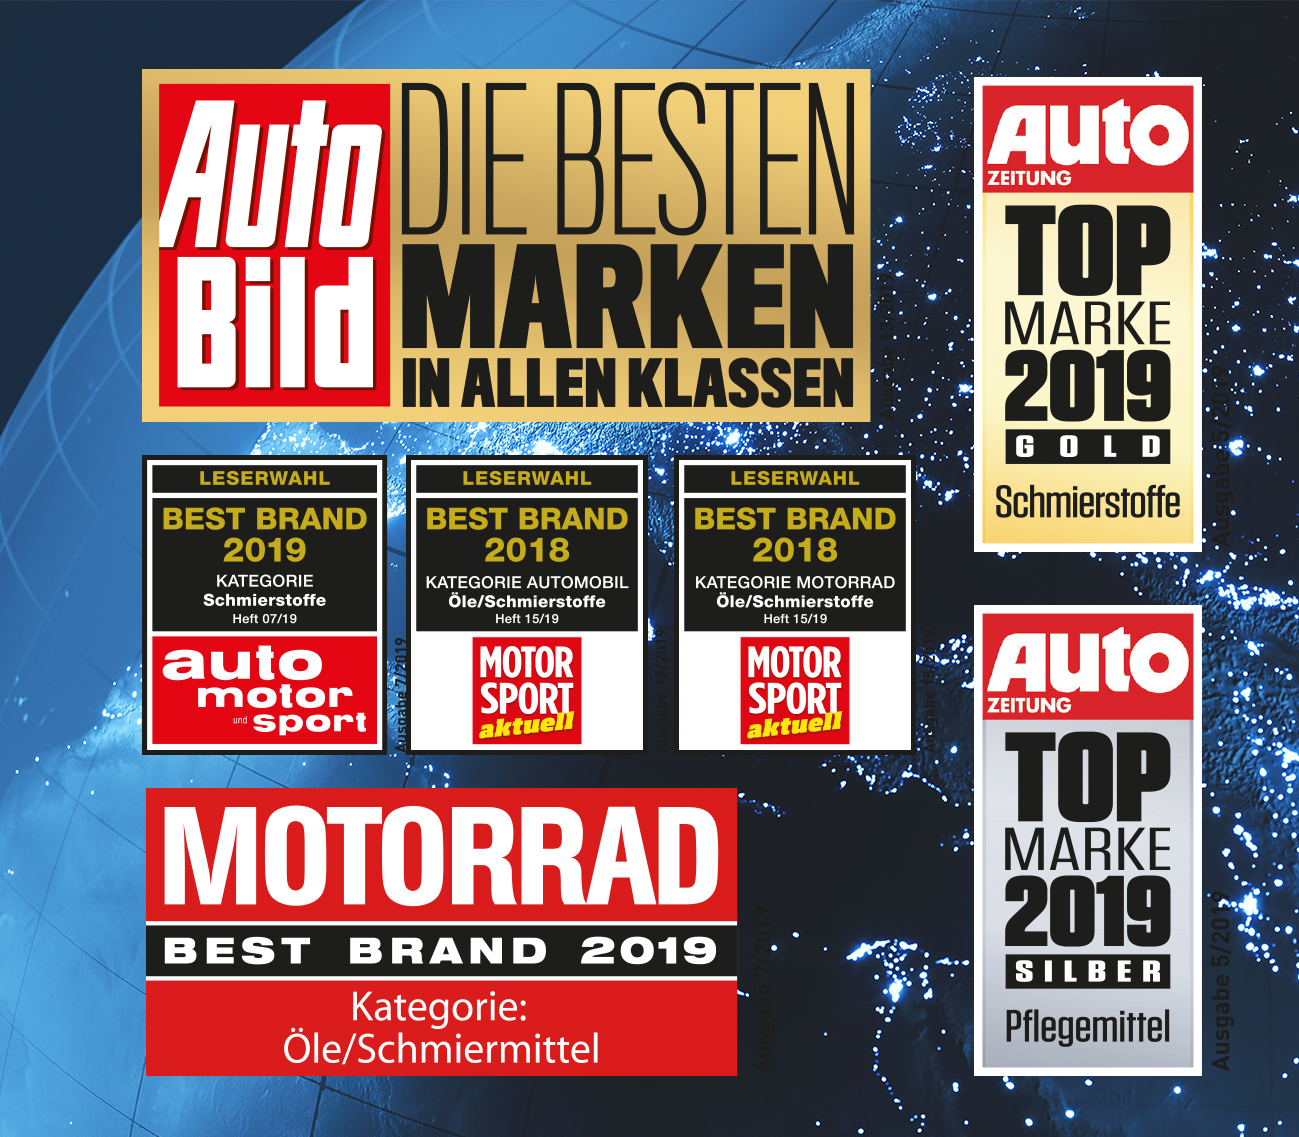 https://www.liqui-moly.com/fileadmin/user_upload/Presse/Pressemitteilungen_DE/2019/03/Best_Brand_2019.jpg